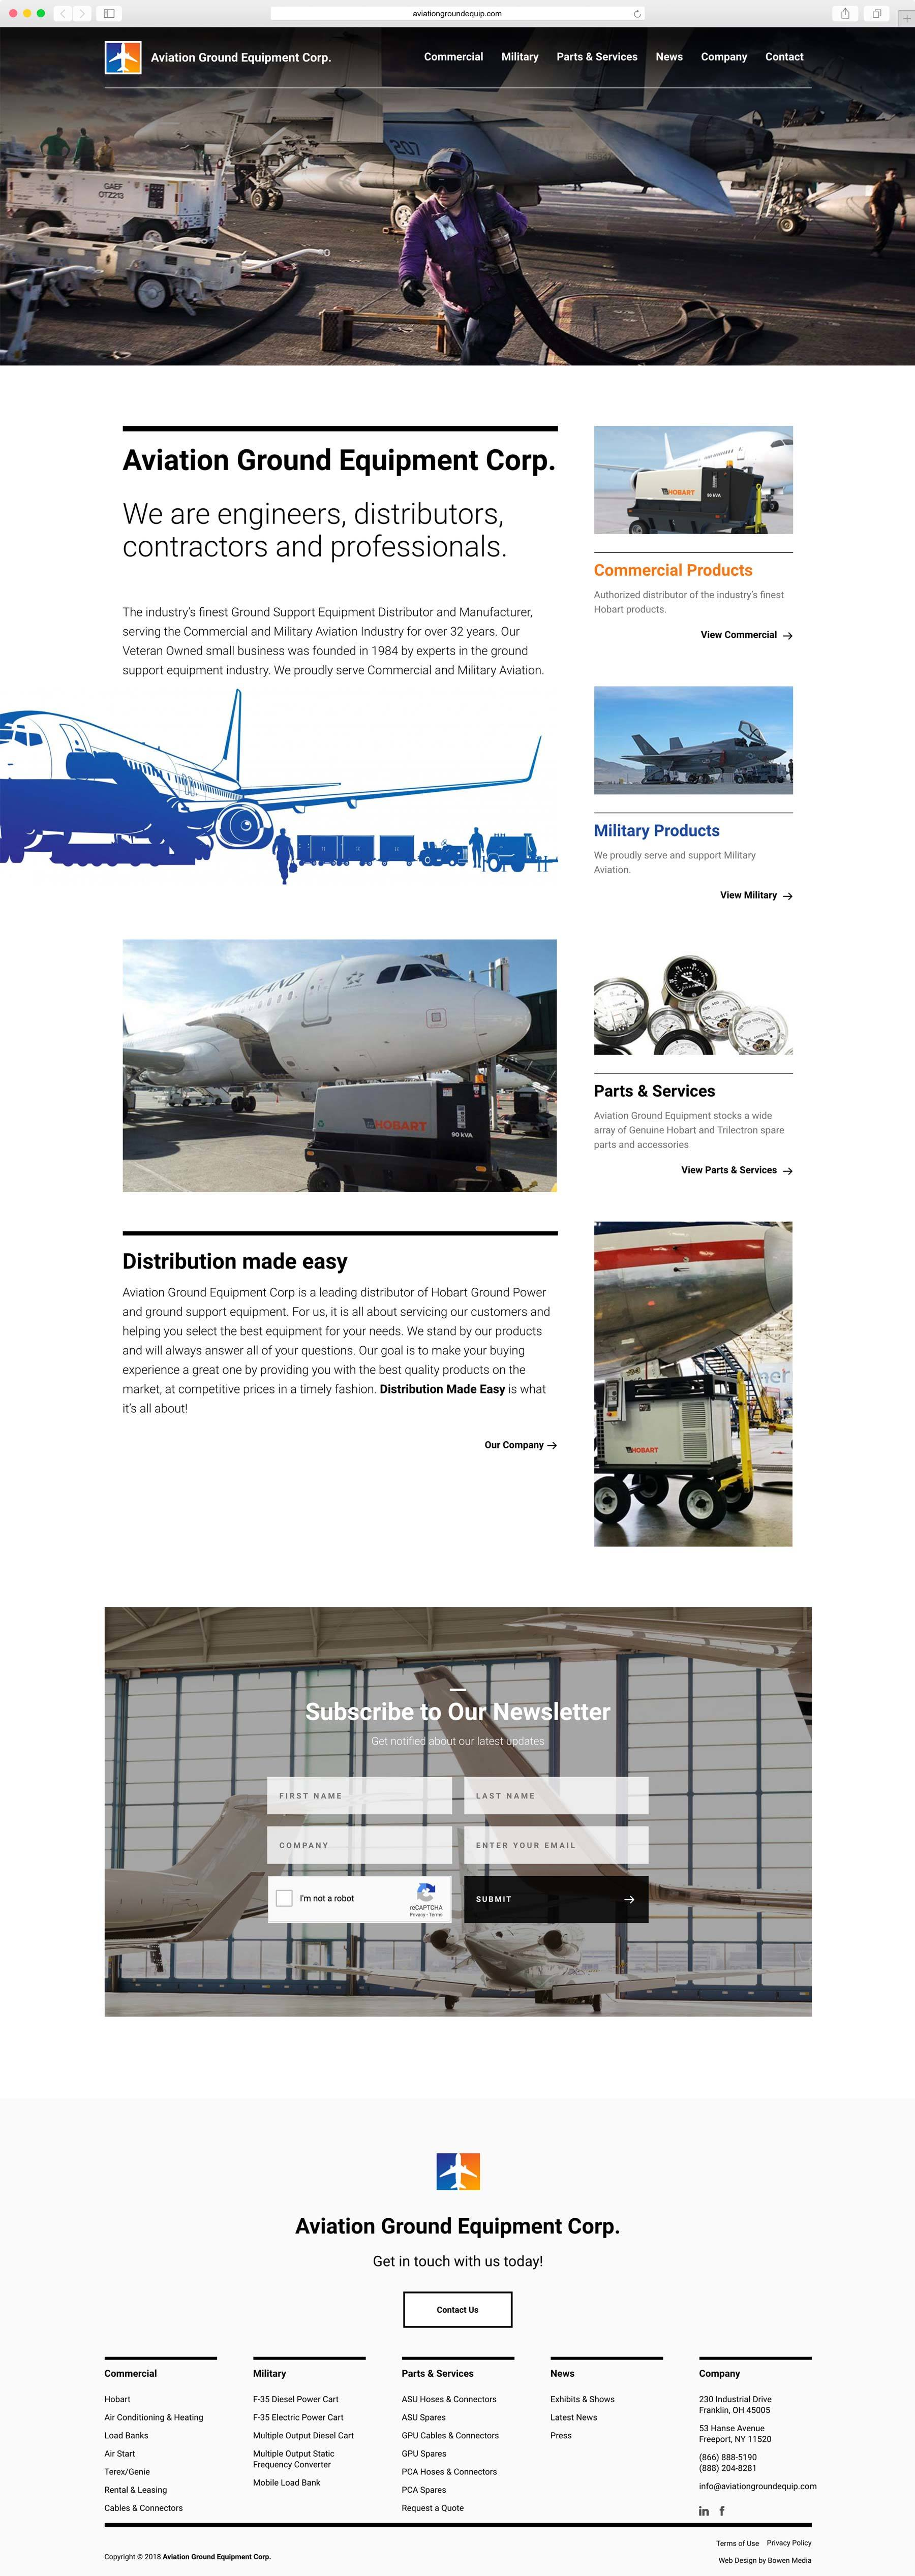 Aviation Ground Equipment Custom web design, Branding services, brand identity design, branding and marketing, branding agency